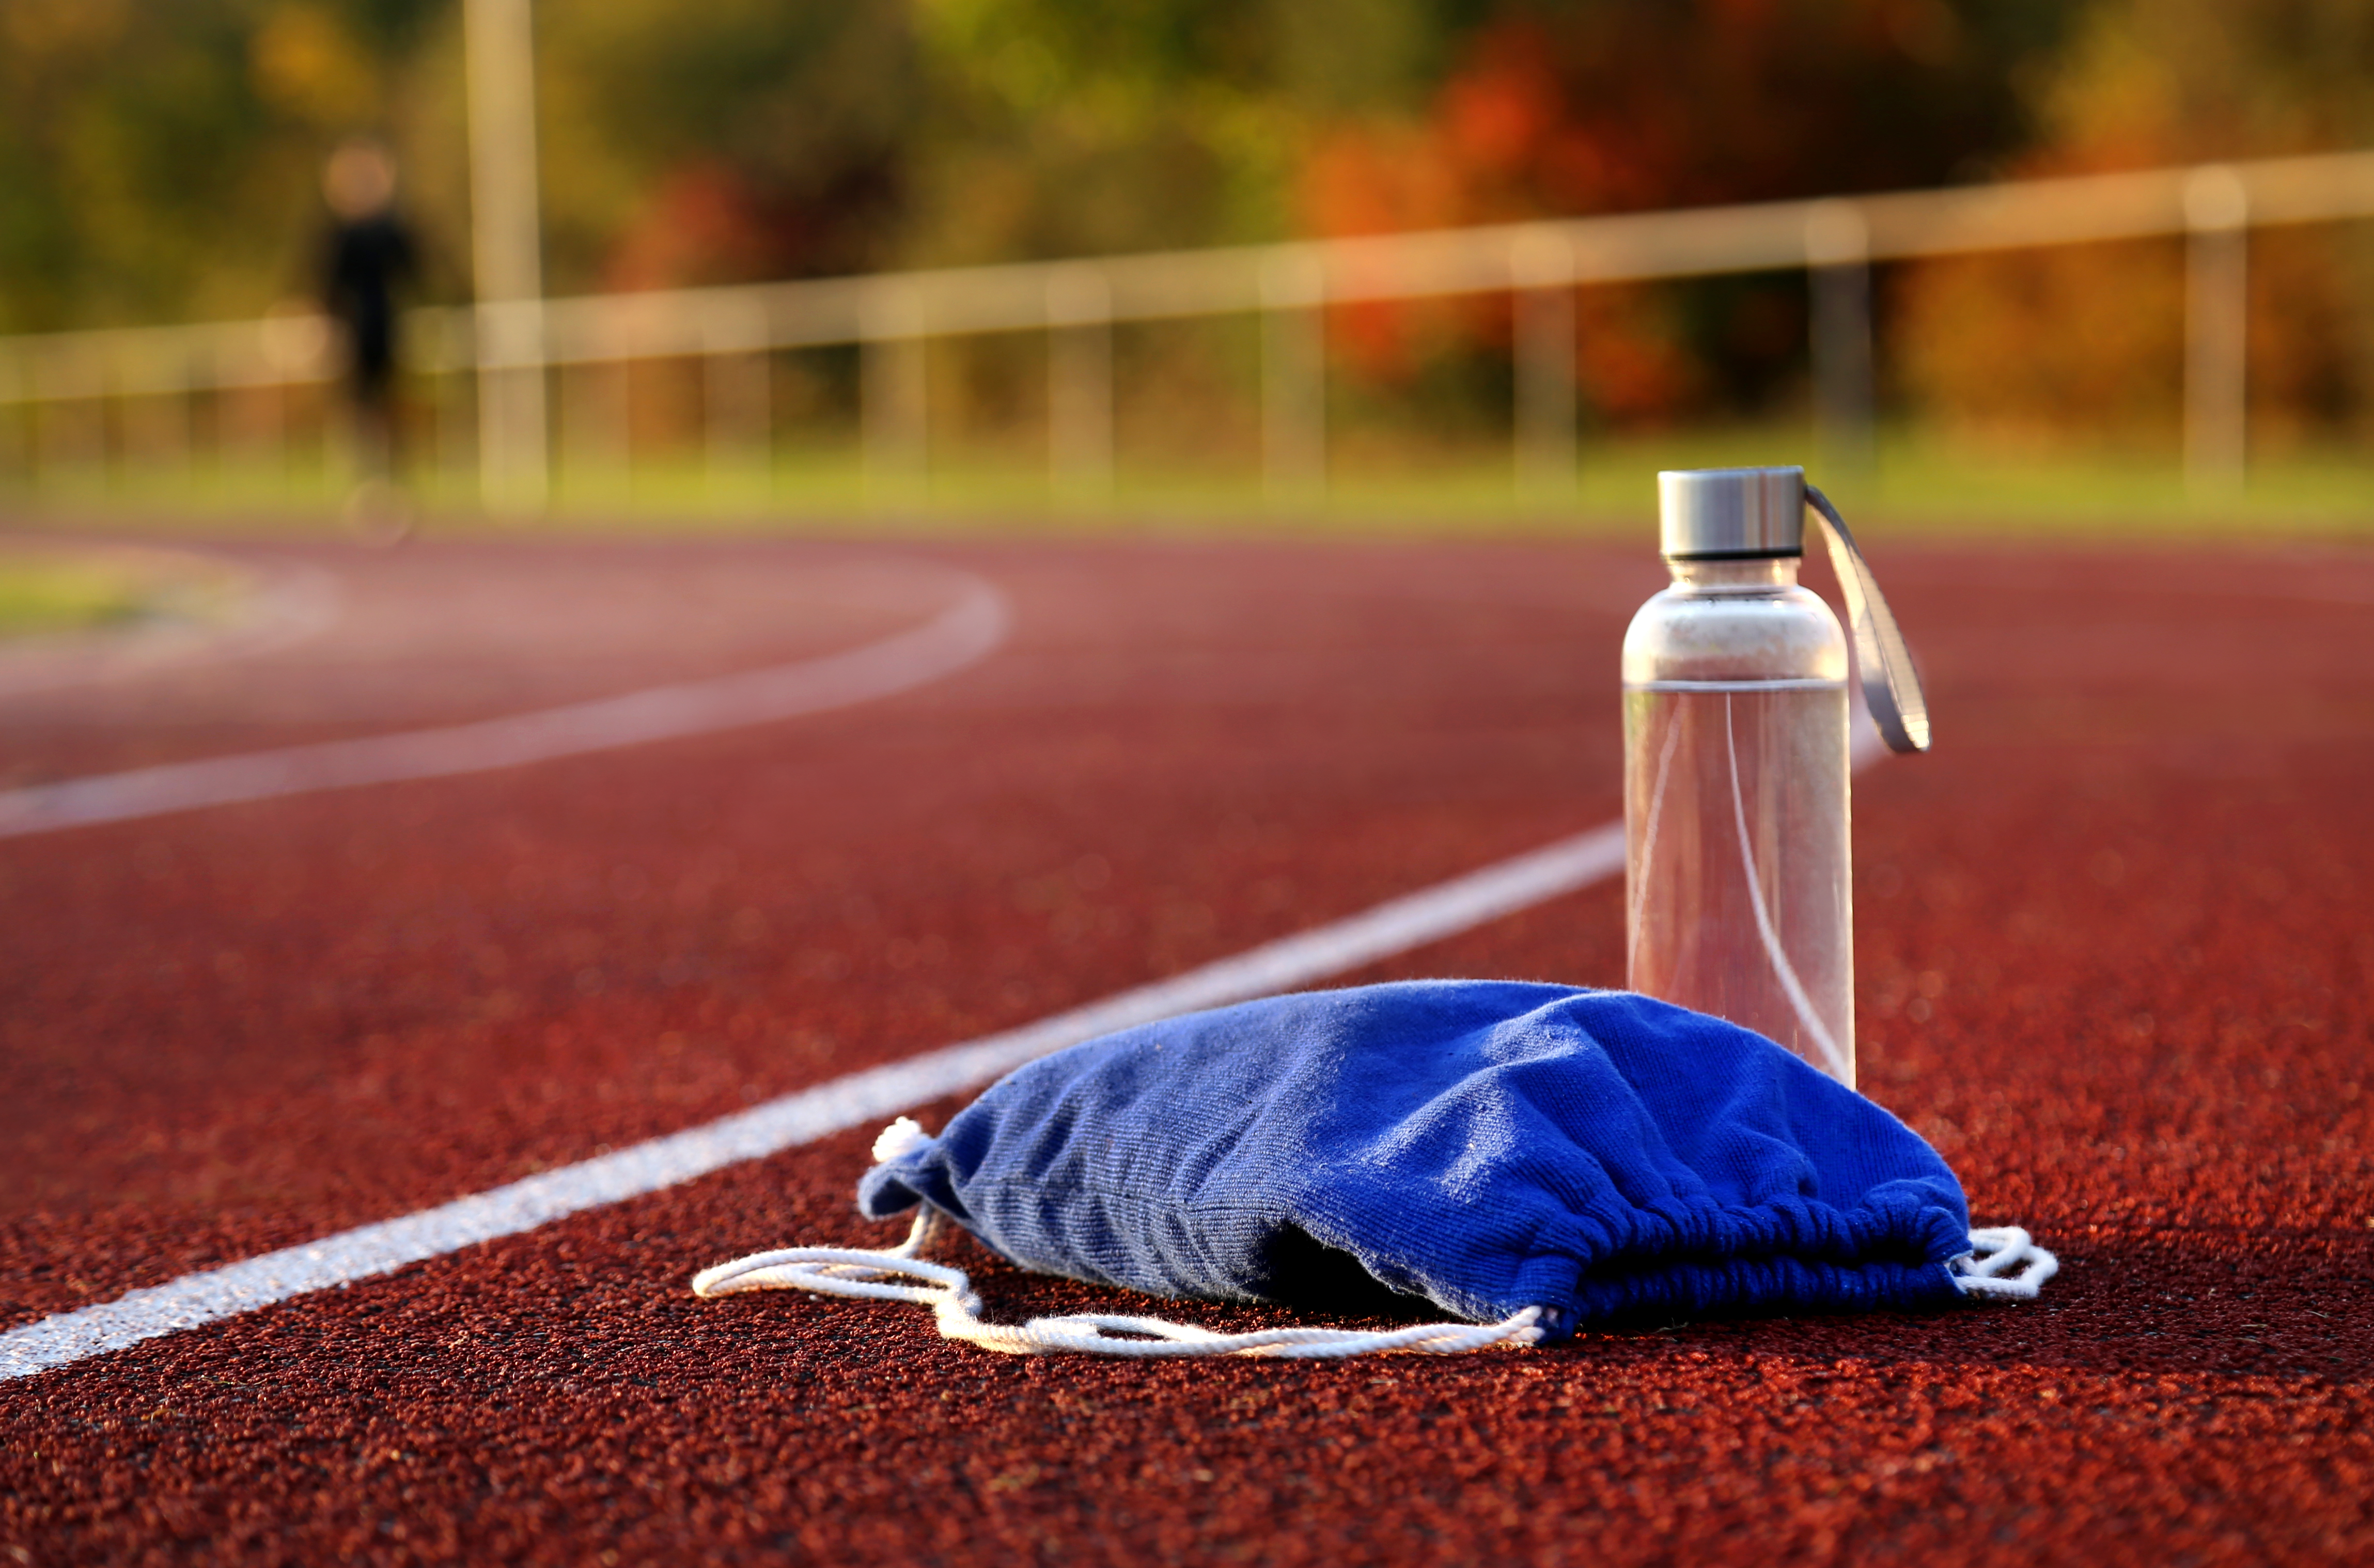 Rucksack and water bottle on athletic track at afternoon